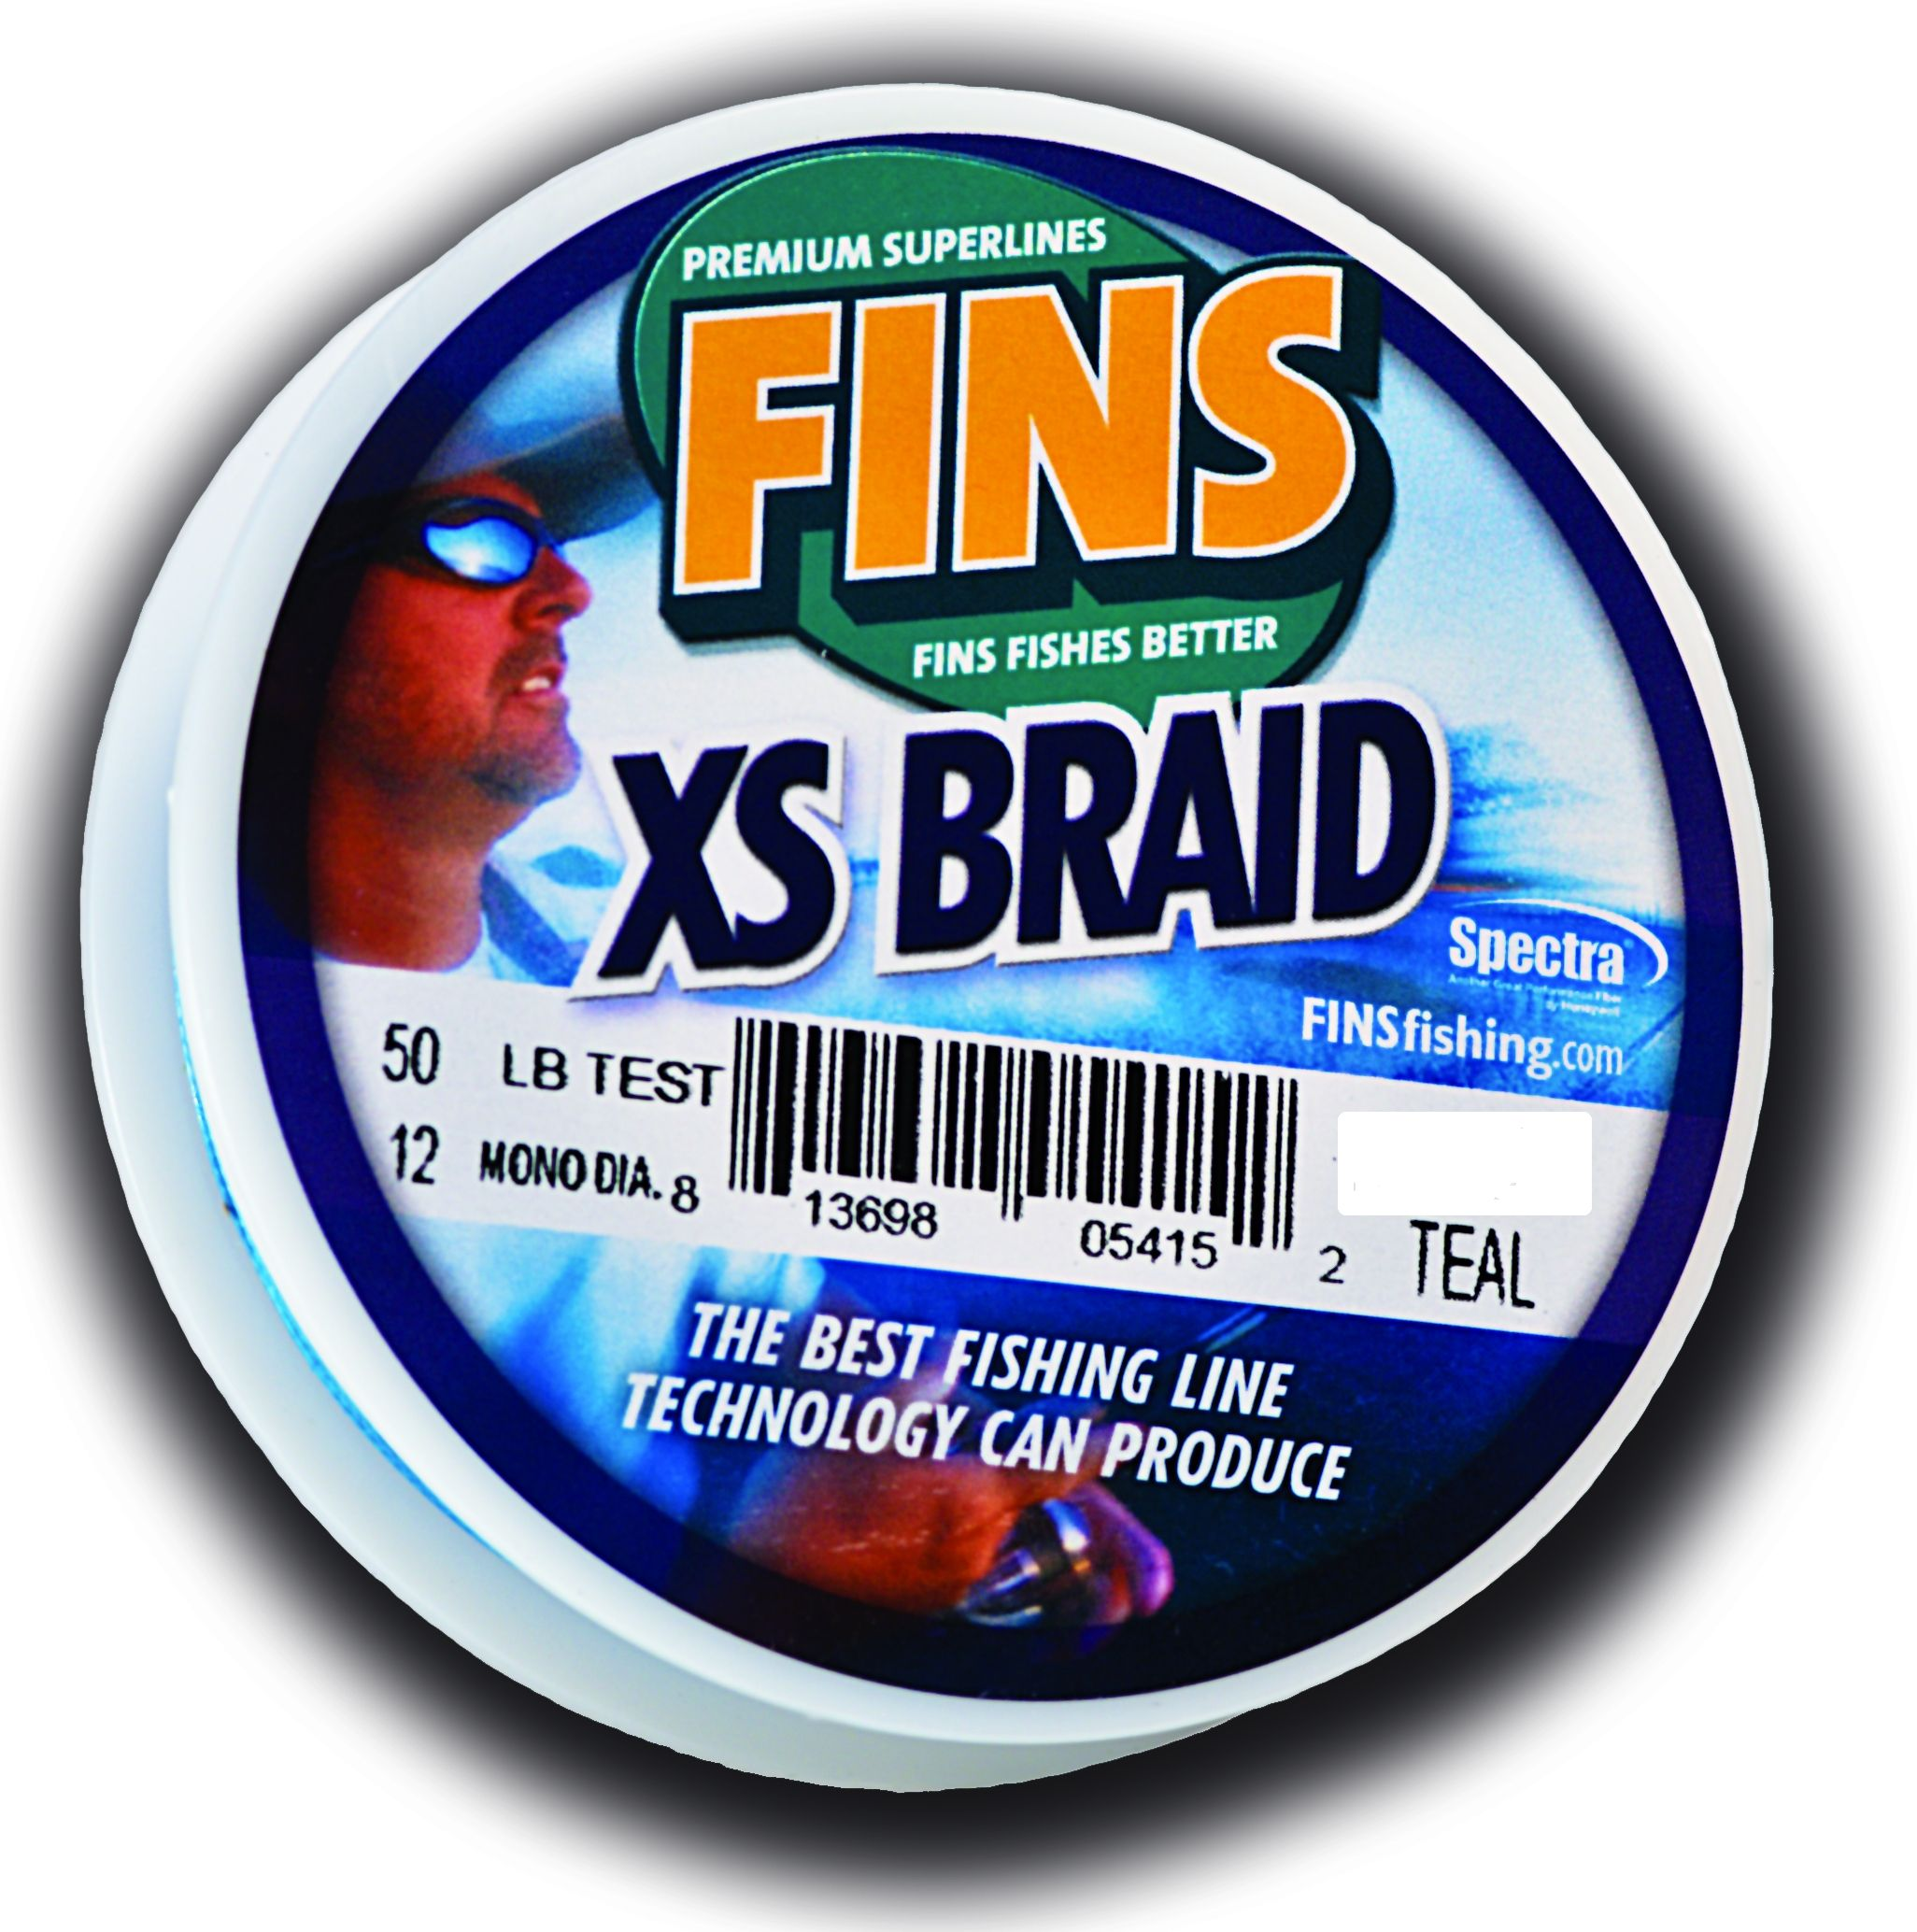 FINS XS BRAID 150 YARDS